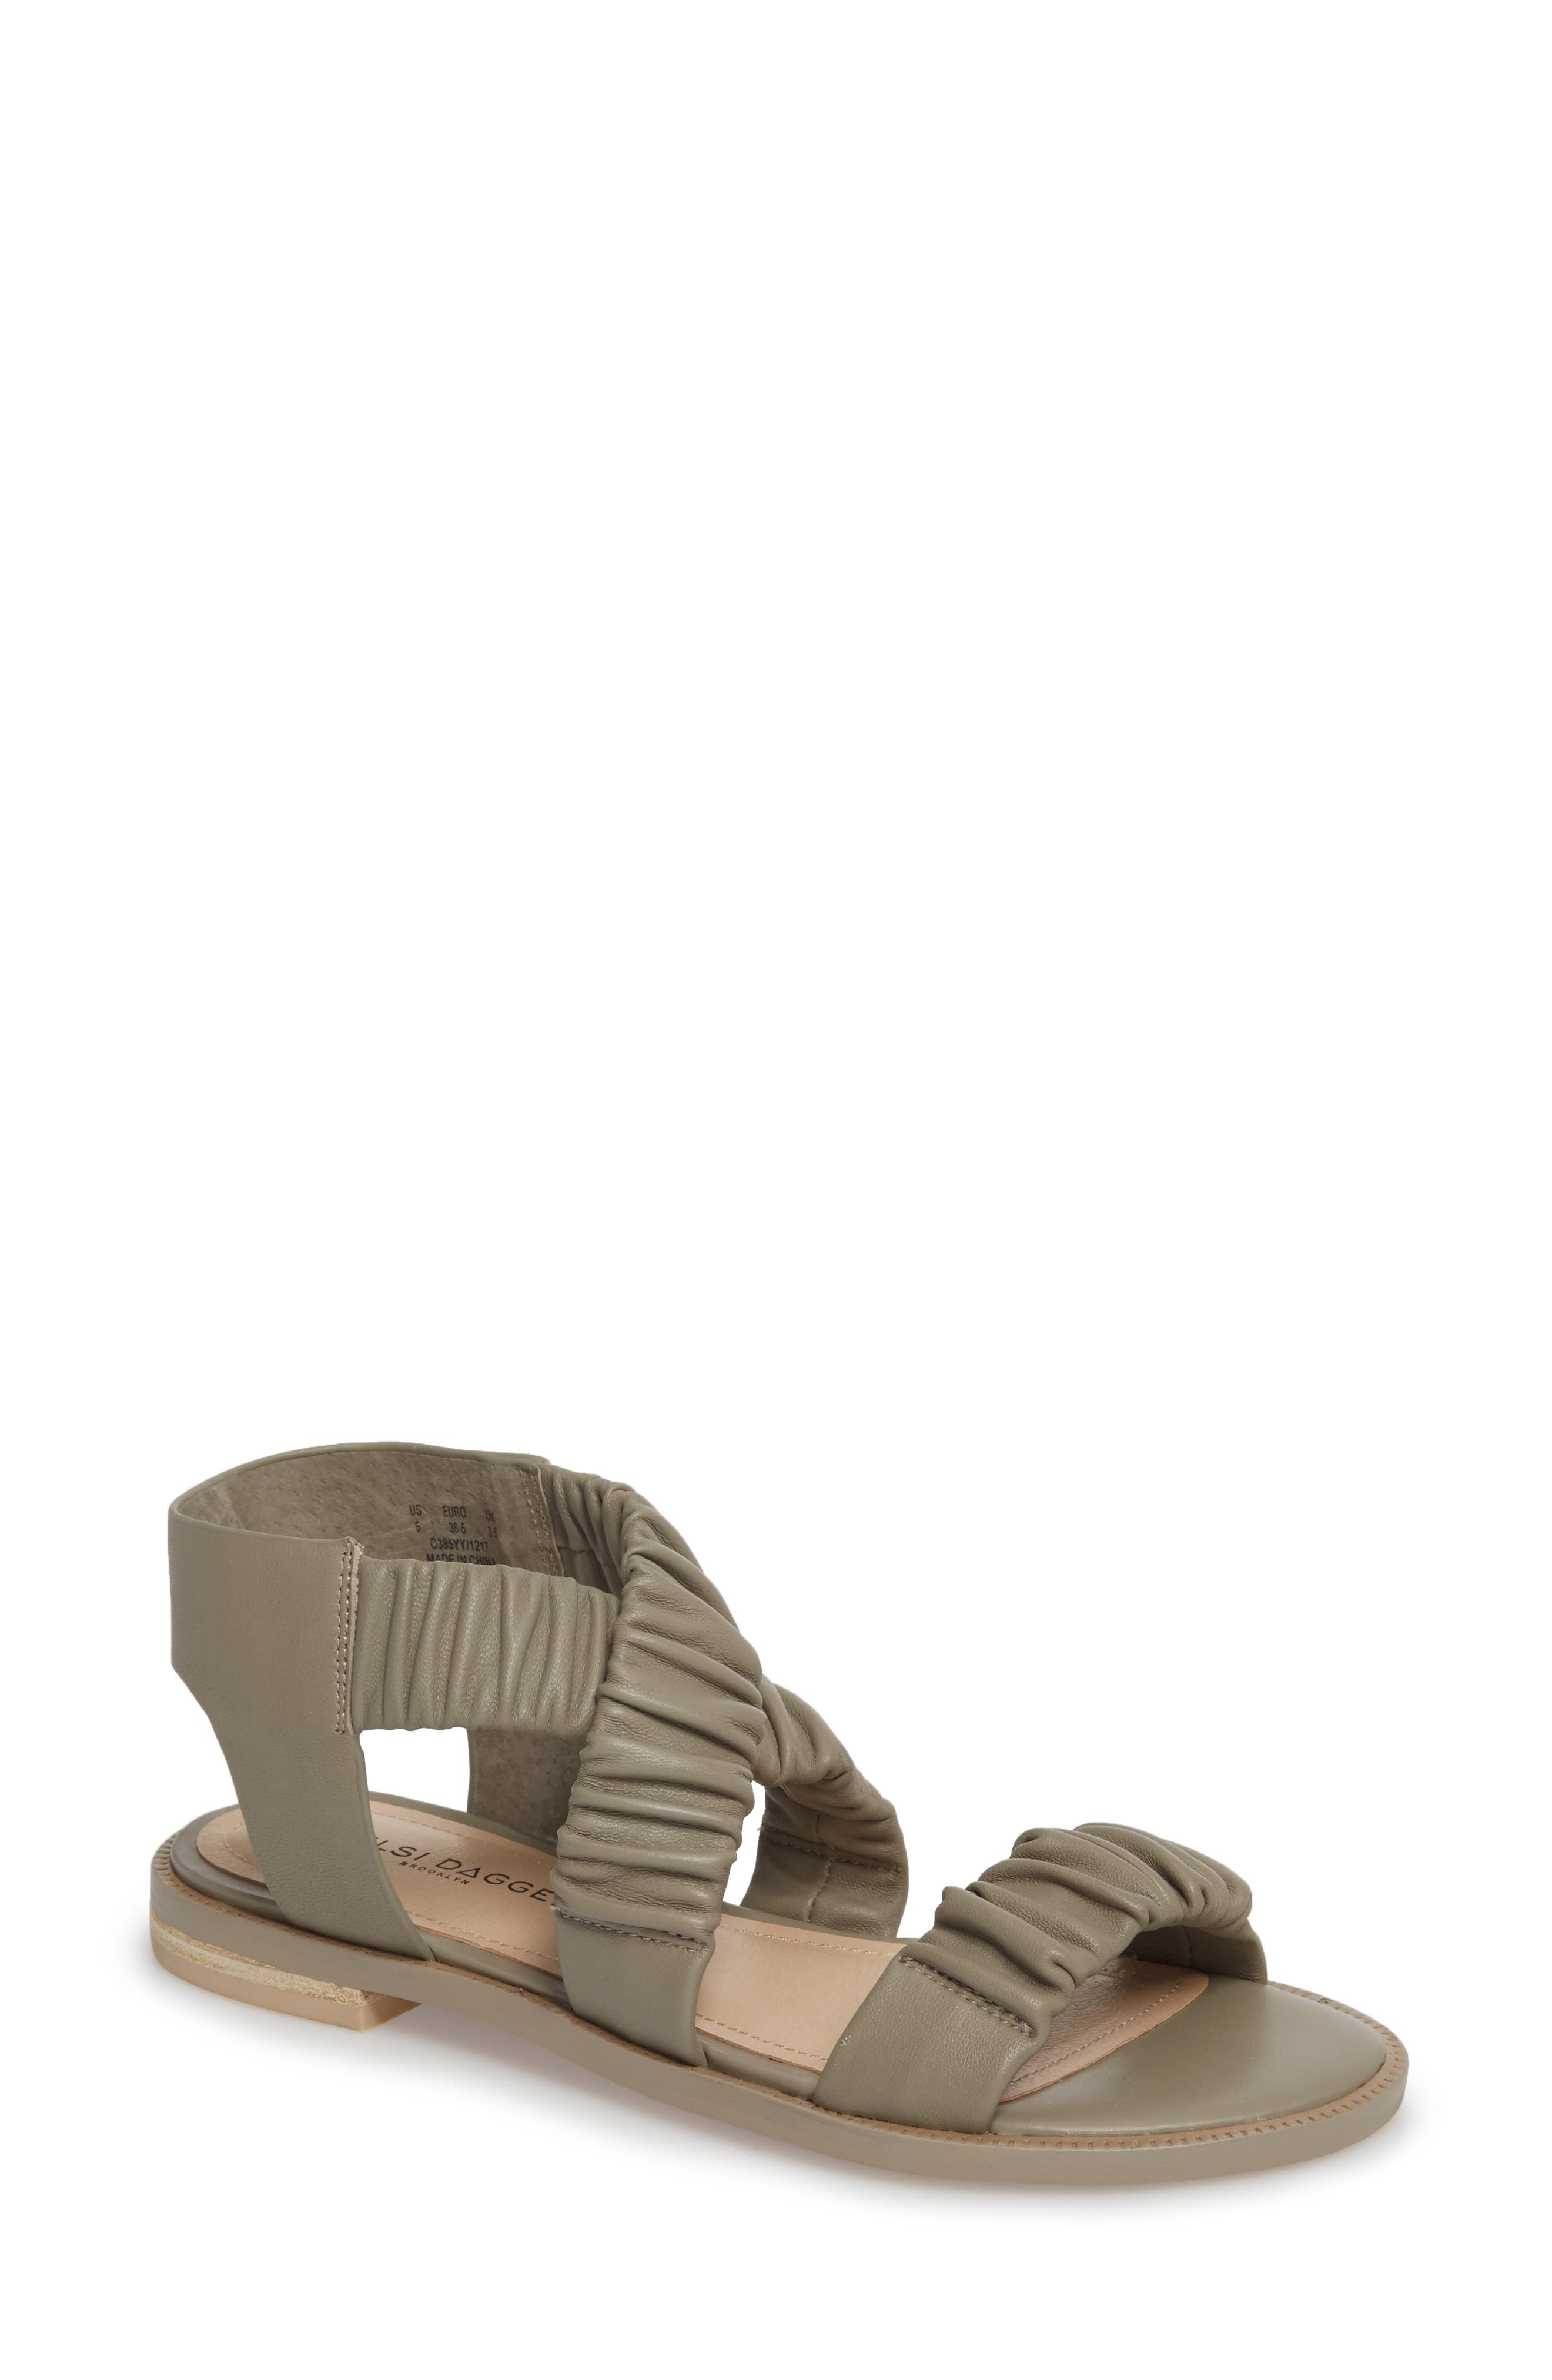 Ryder Pleated Flat Sandal,                         Main,                         color, Clove Leather